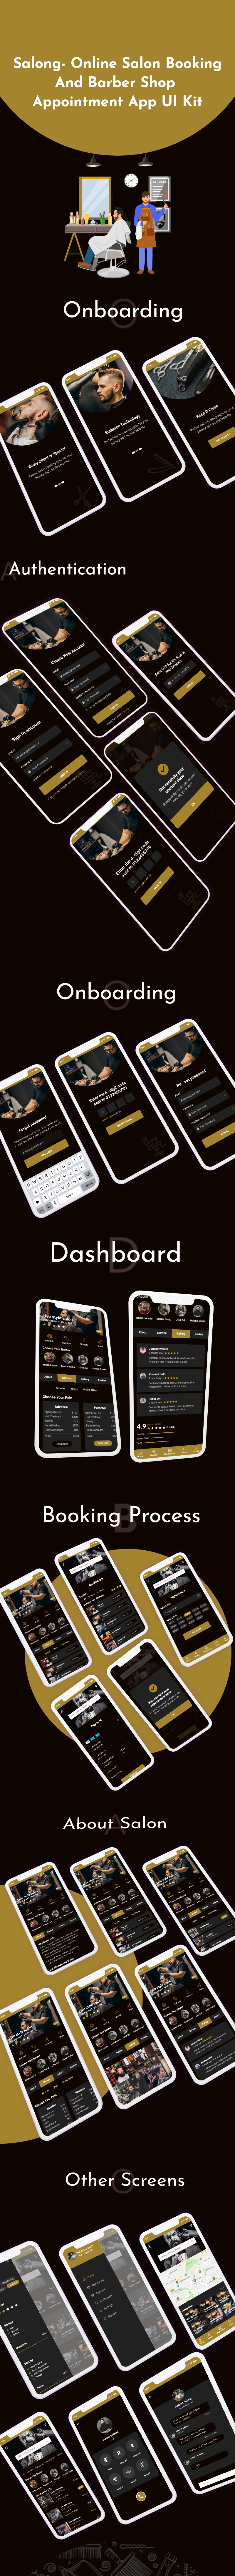 Salong - Online Salon Booking and Barber Shop Appointment App UI Kit - 2